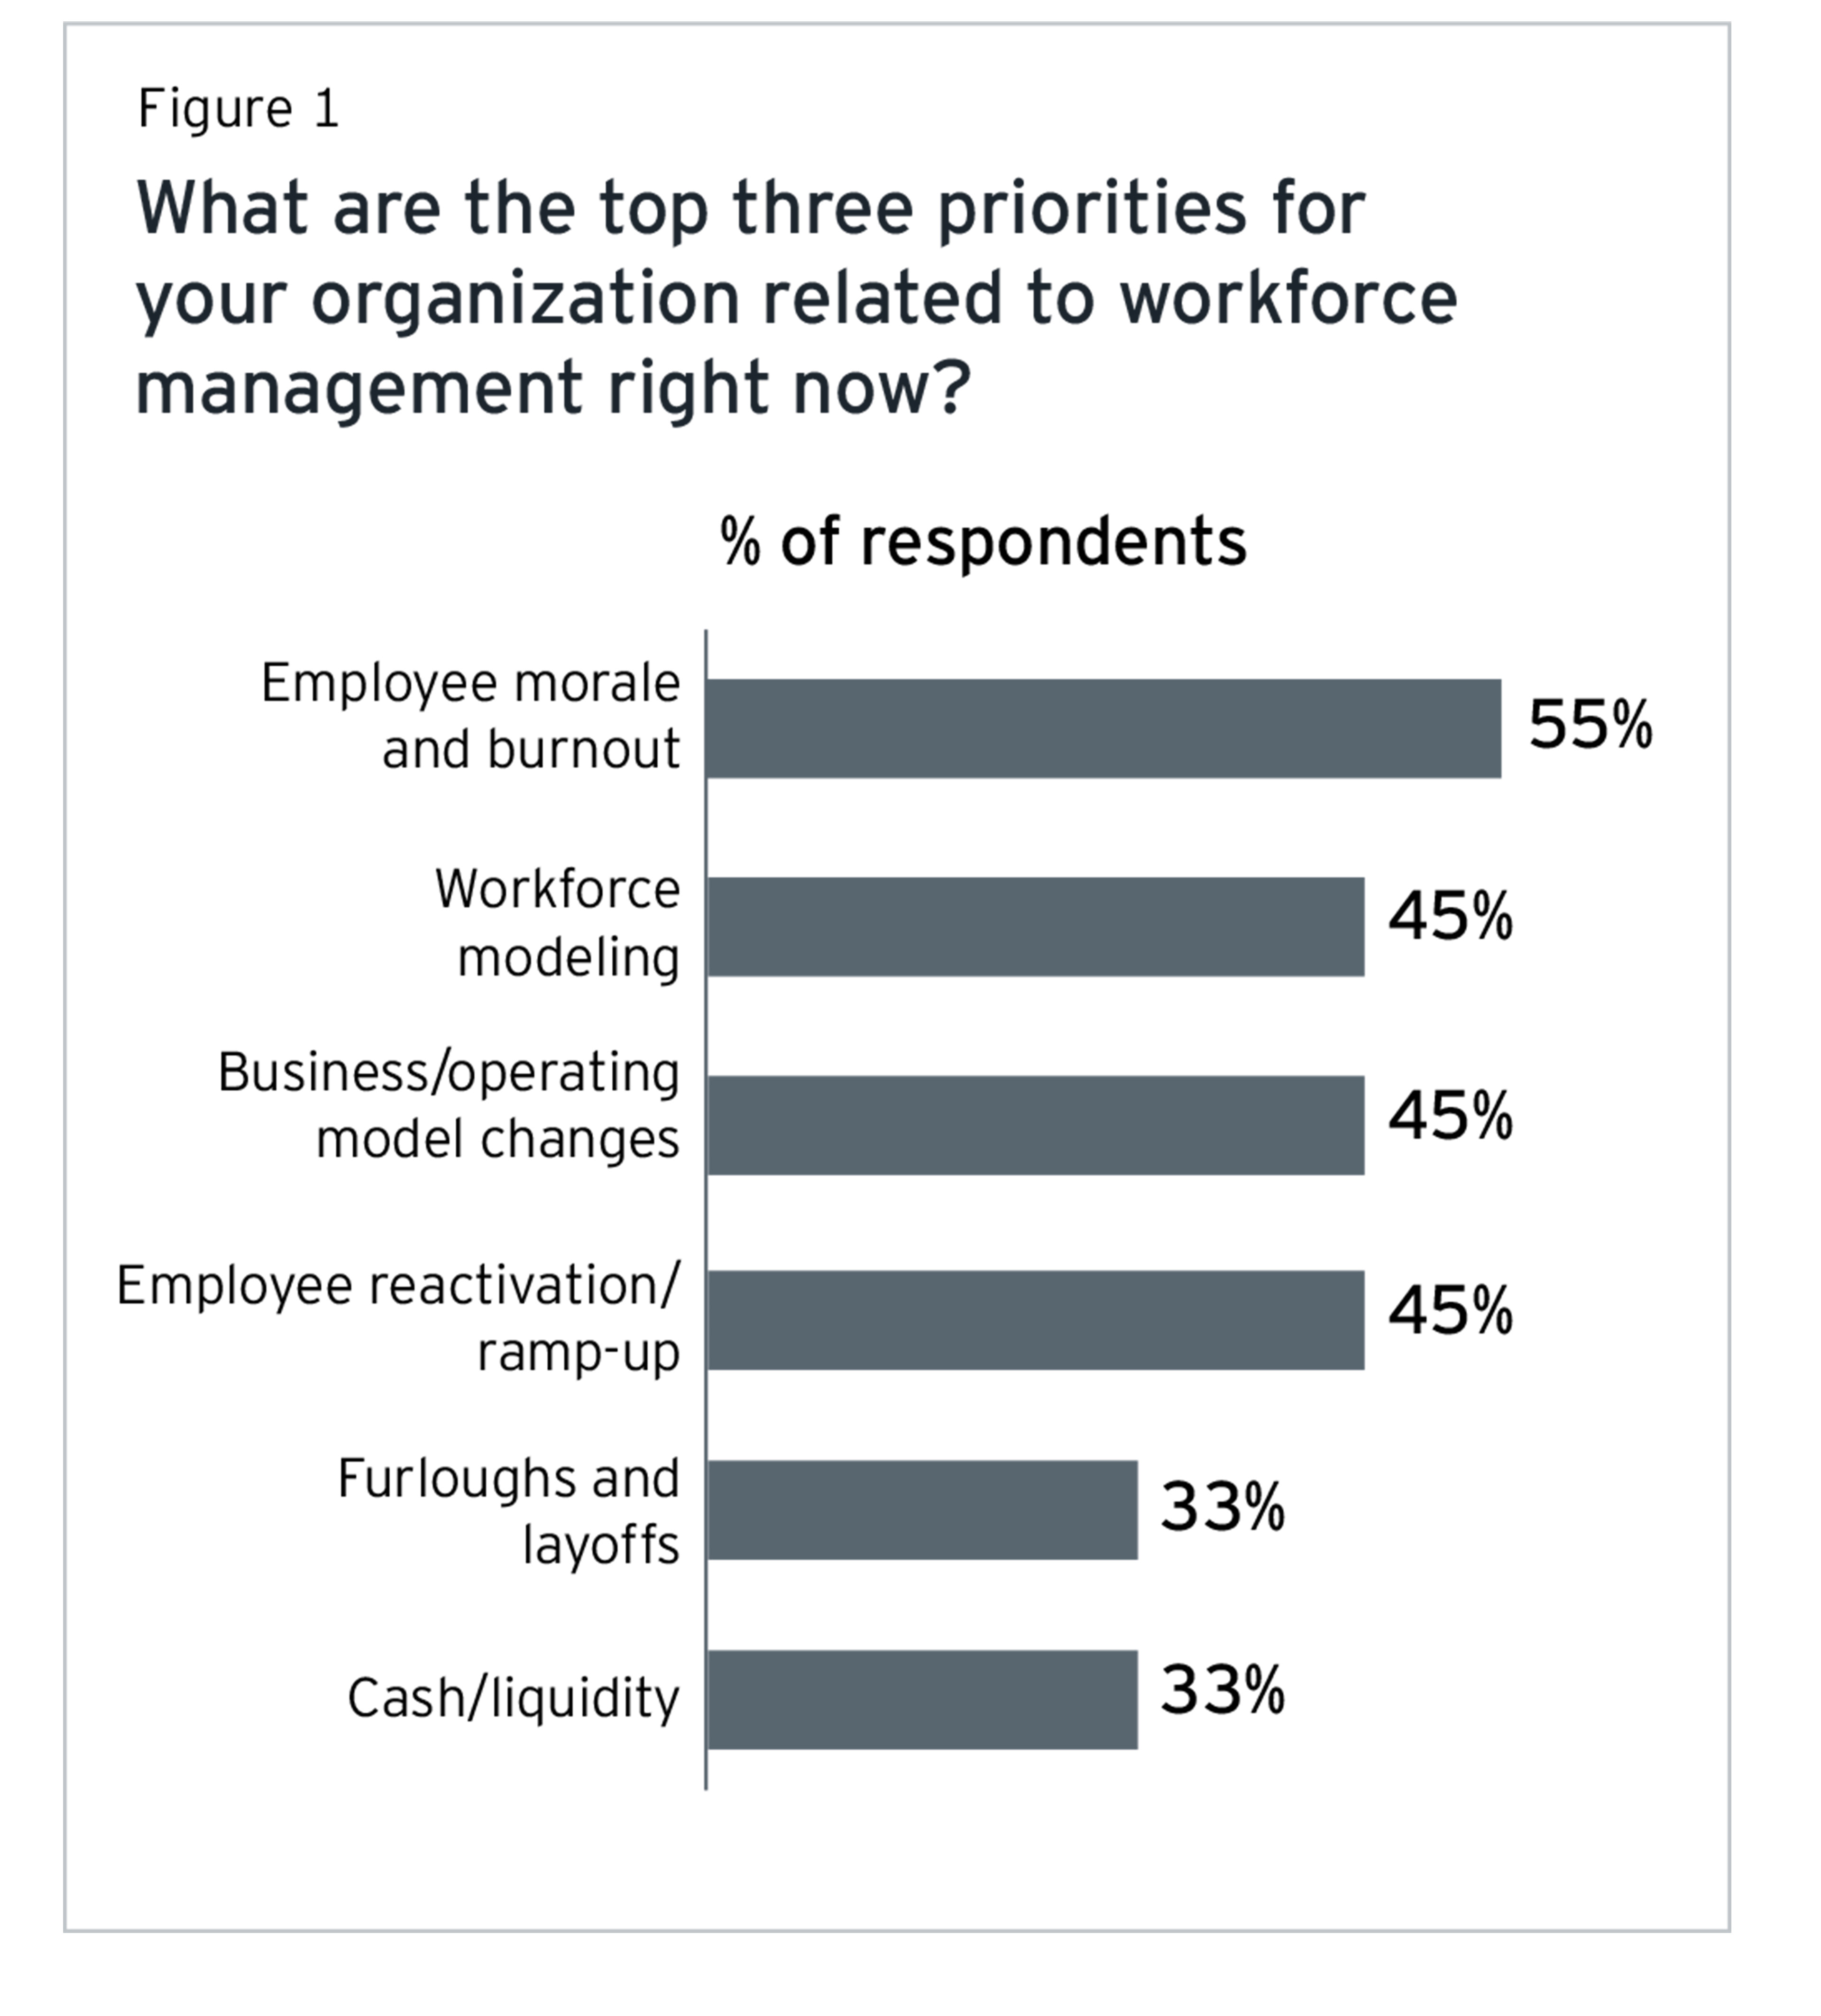 Top three priorities for your organization related to workforce management